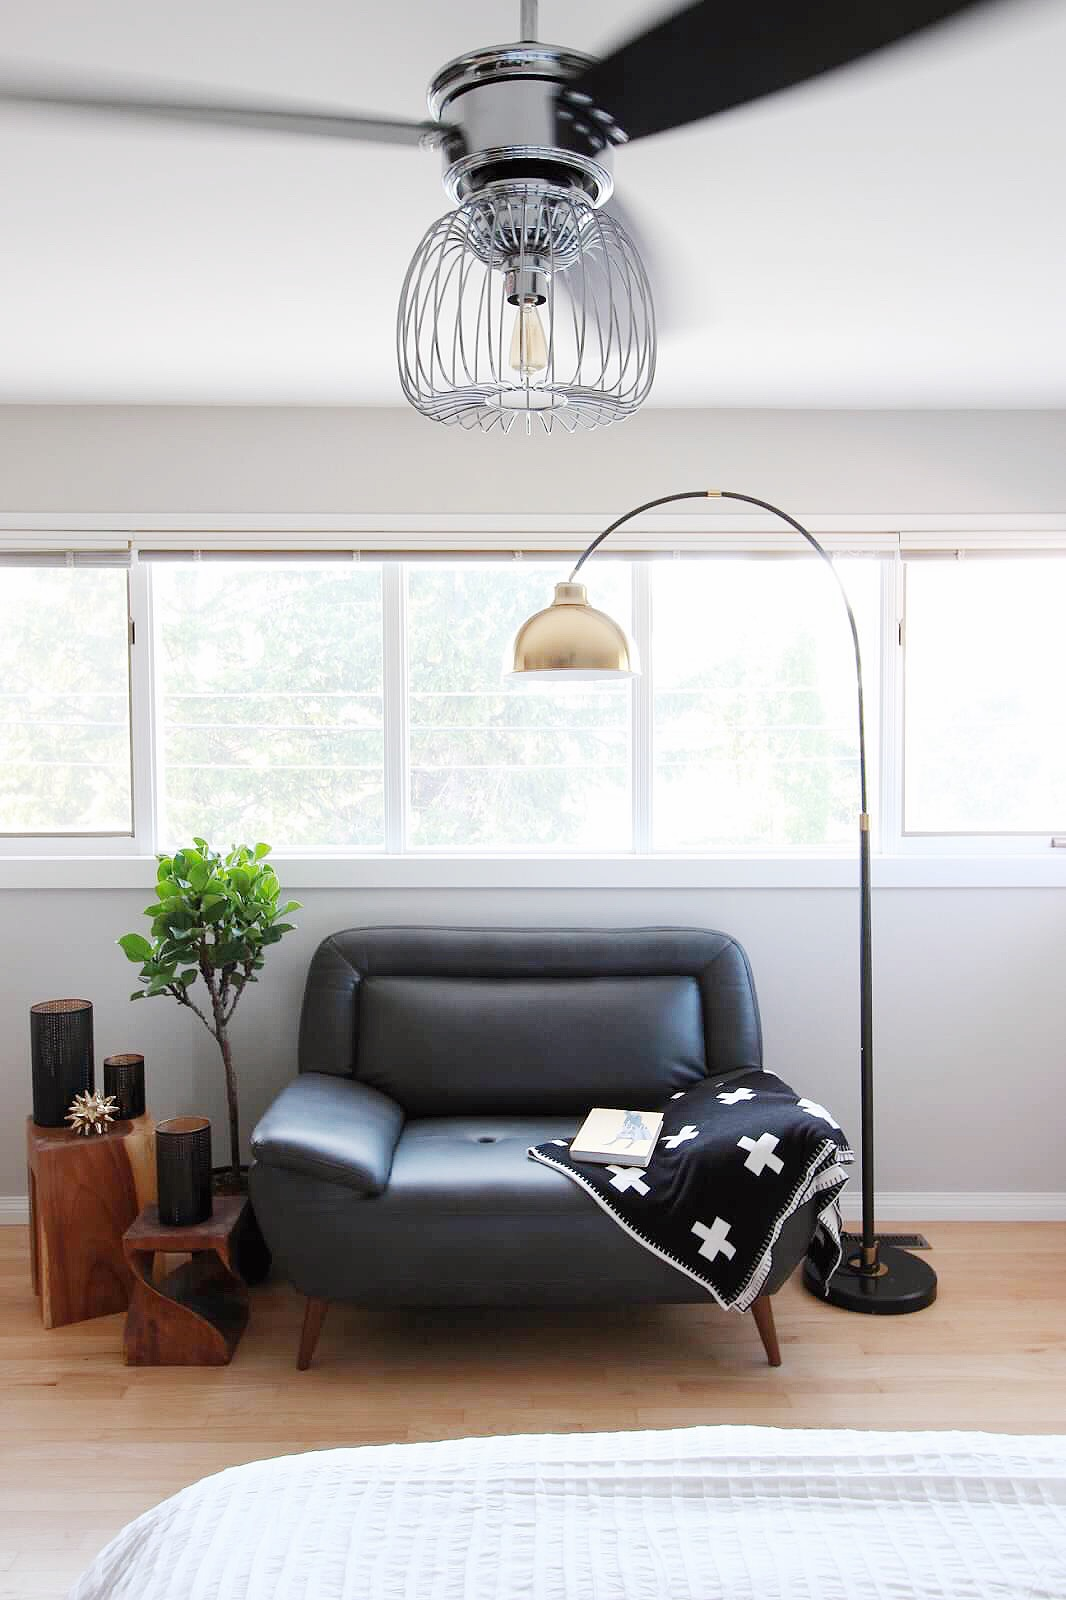 Home Decor || A Sneak Peek: Our new Master Bedroom || The Reading ...